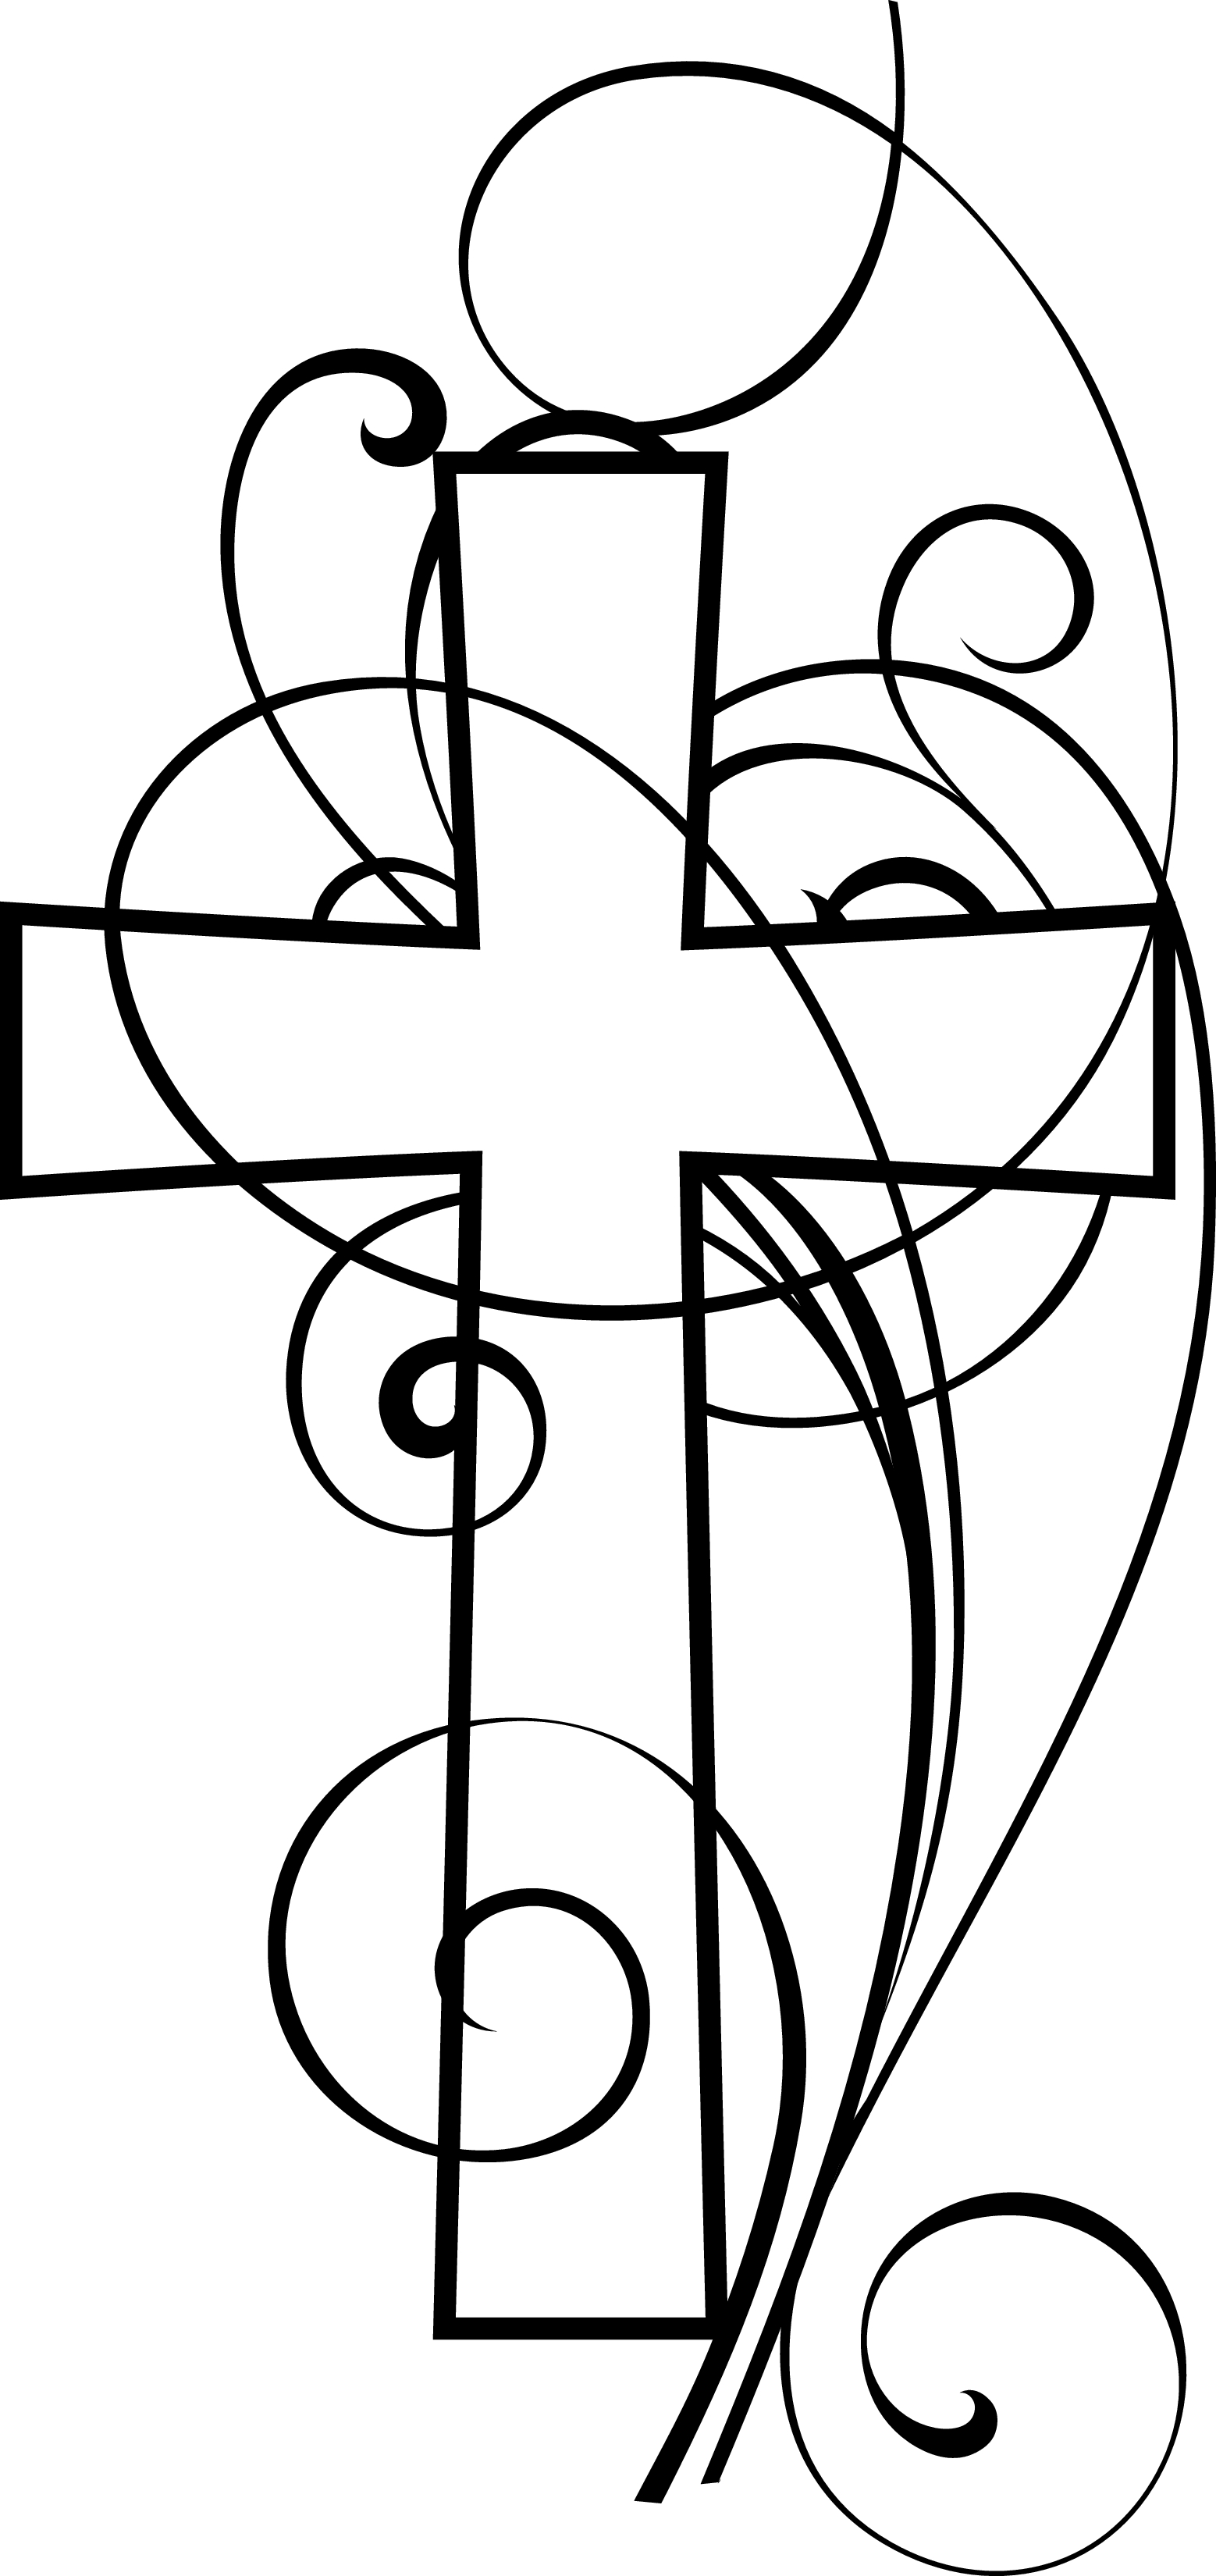 hight resolution of 1558x3300 religious clip art black and white